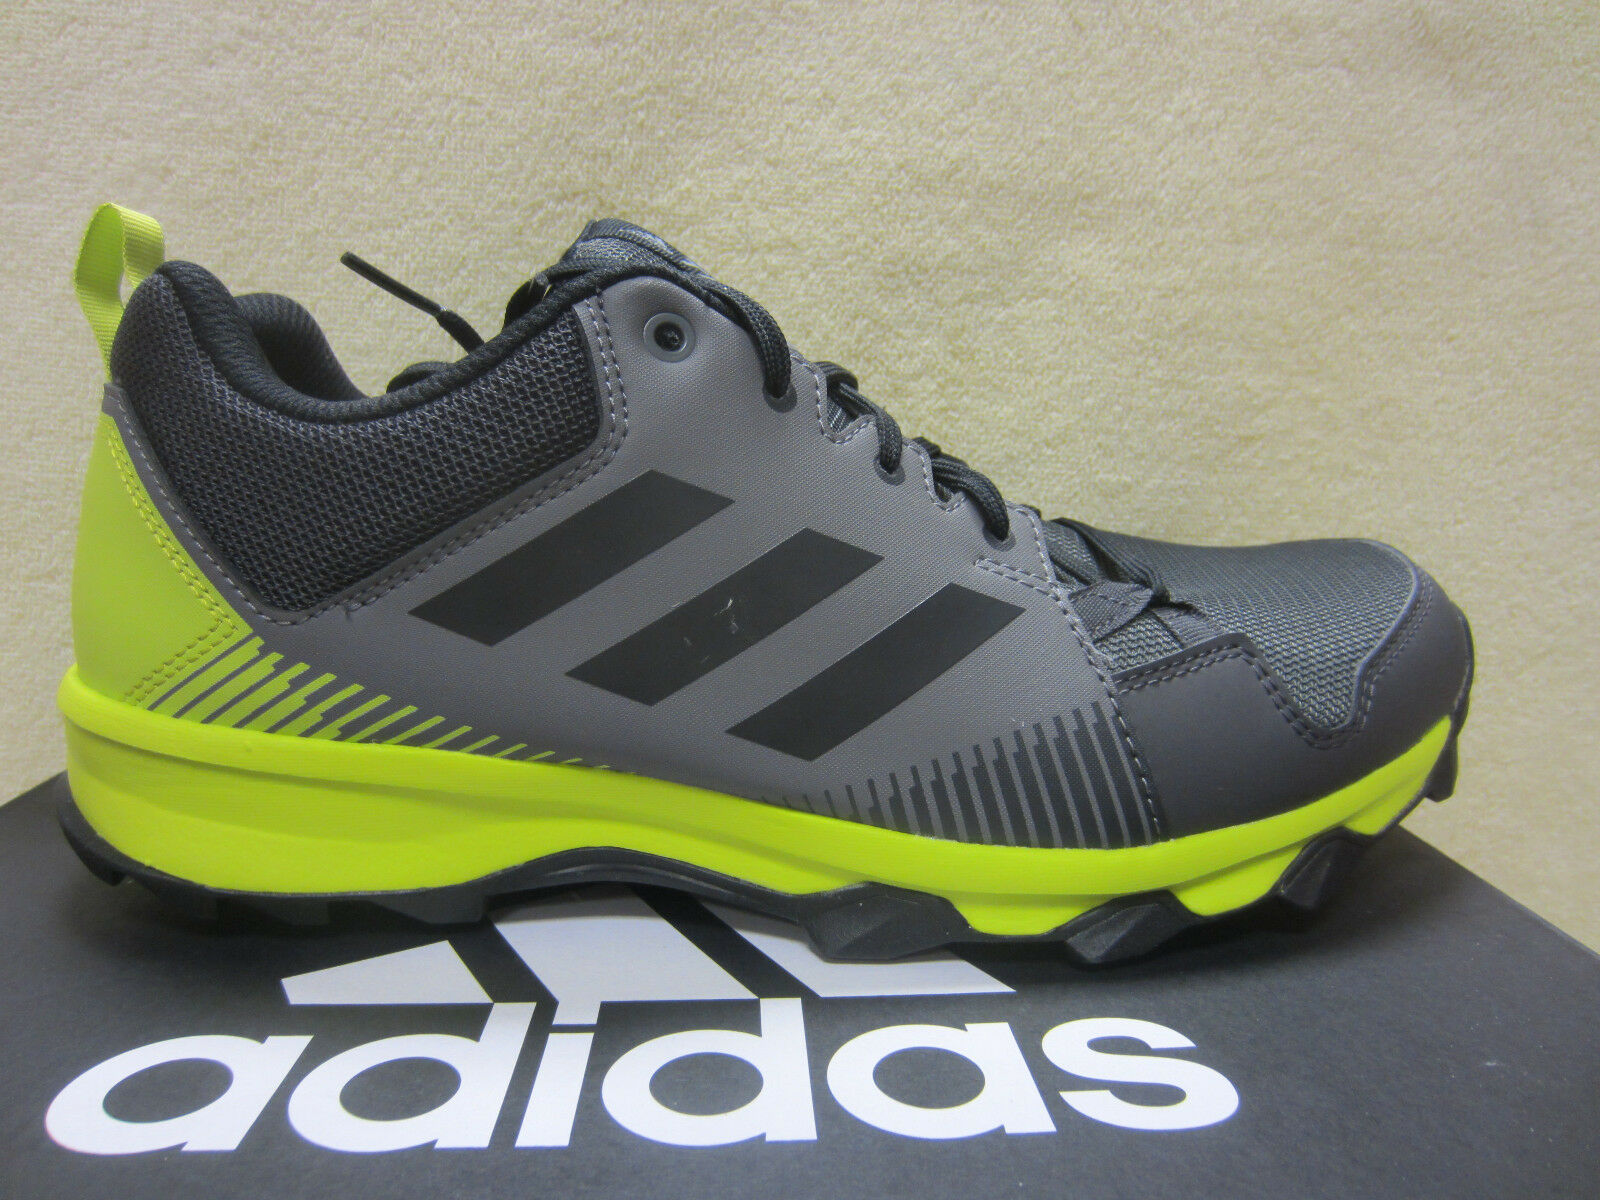 New Adidas TERREX TRACEROCKER Mens Comfortable New shoes for men and women, limited time discount